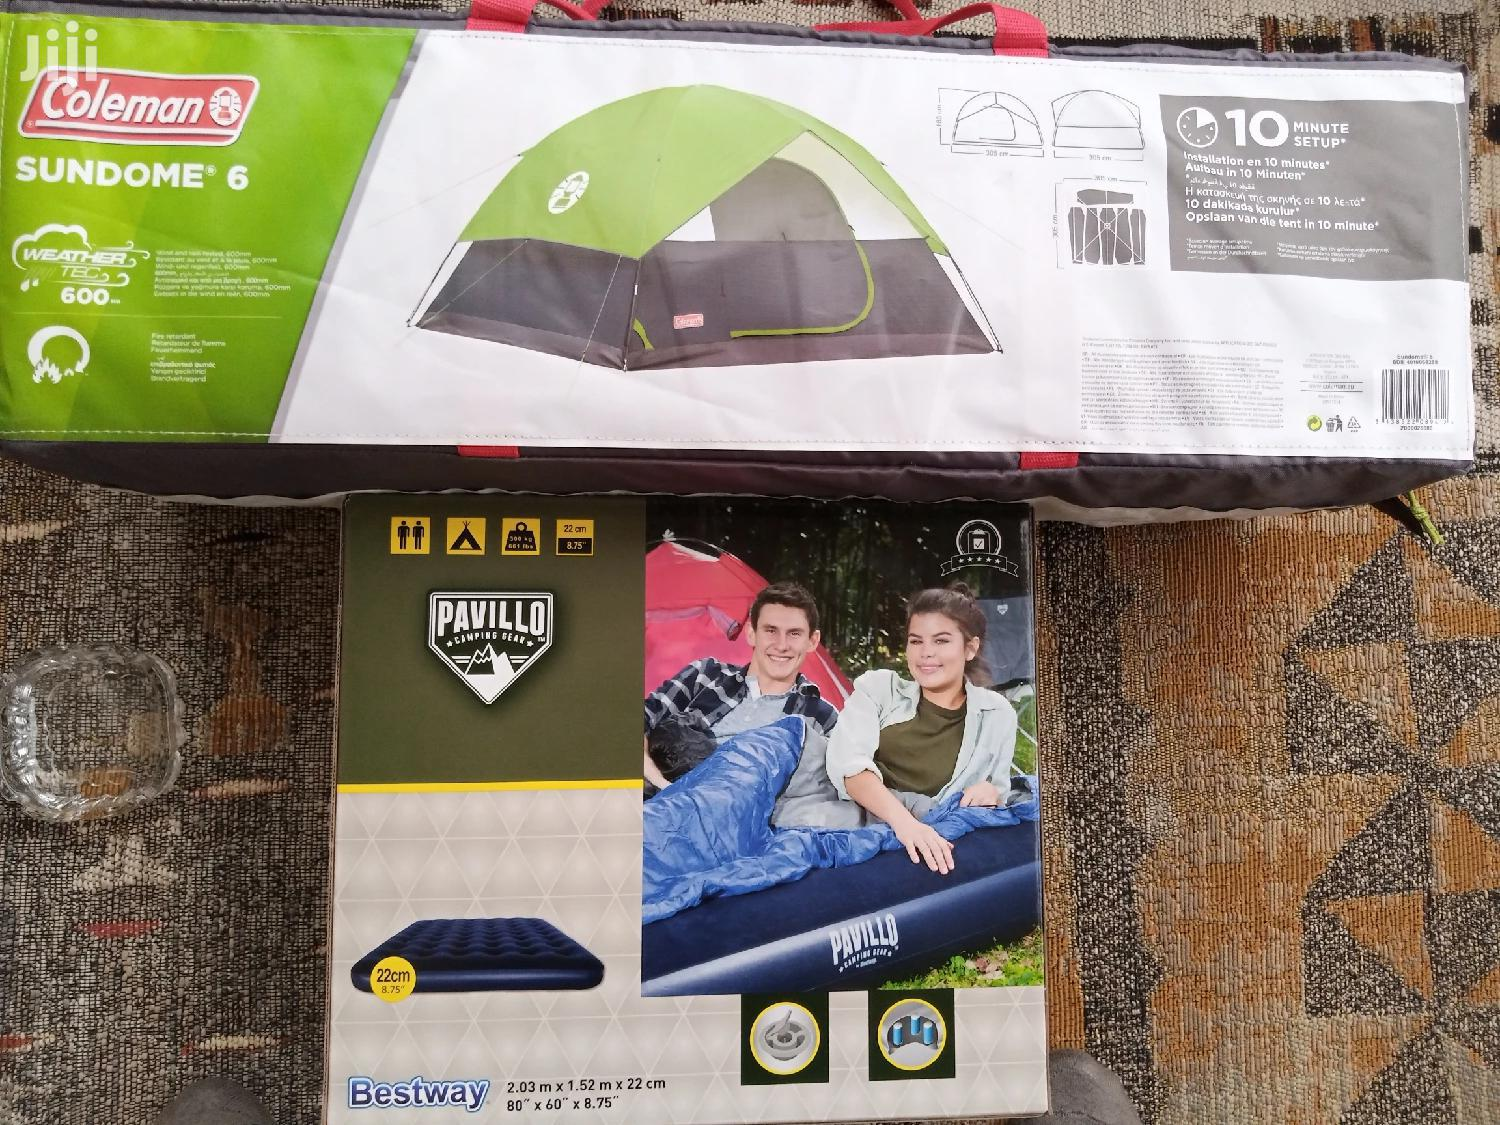 Archive: Sale!! Coleman Sundome 6 Camping Tent.